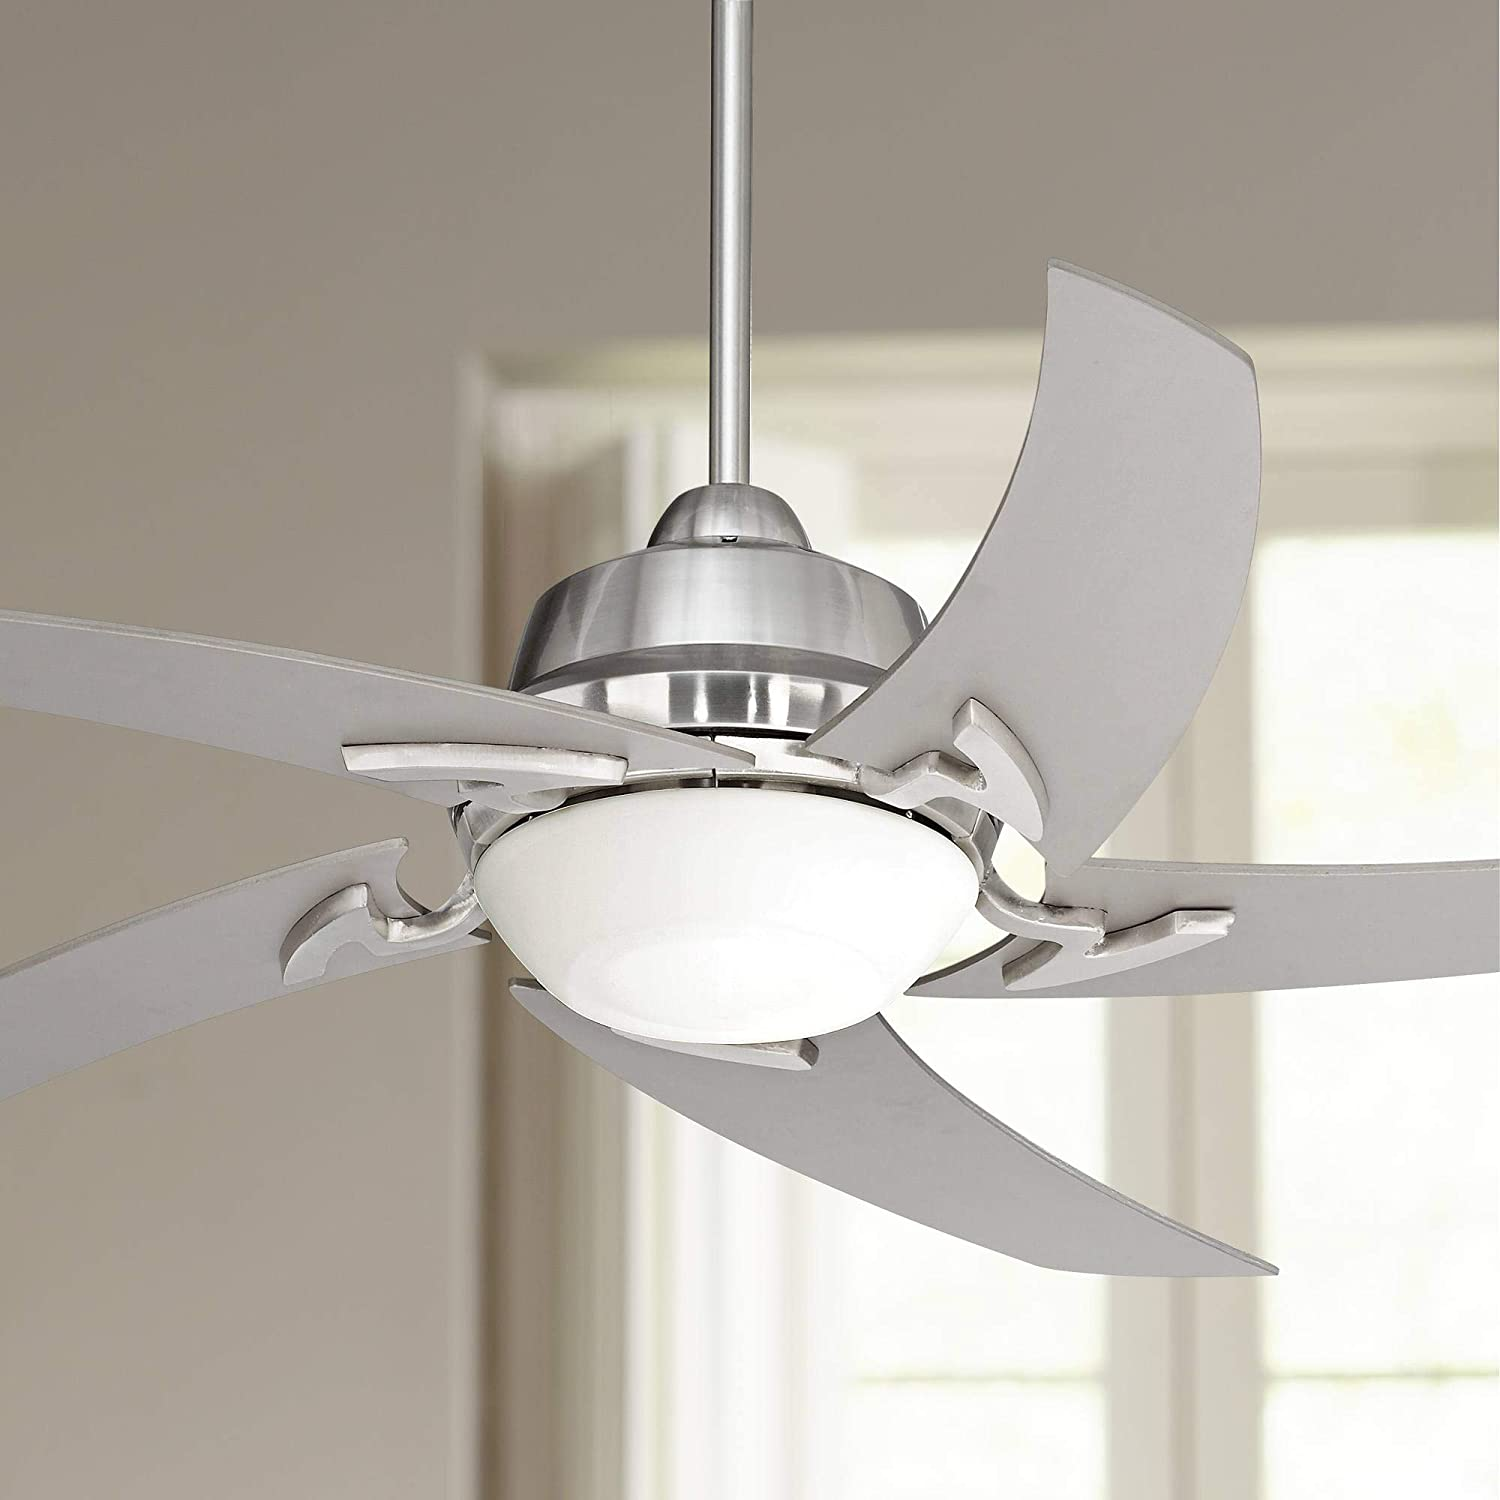 52 Capri Modern Ceiling Fan with Light LED Remote Control Brushed Nickel Silver Blades Opal Glass for Living Room Kitchen Bedroom Family Dining – Casa Vieja